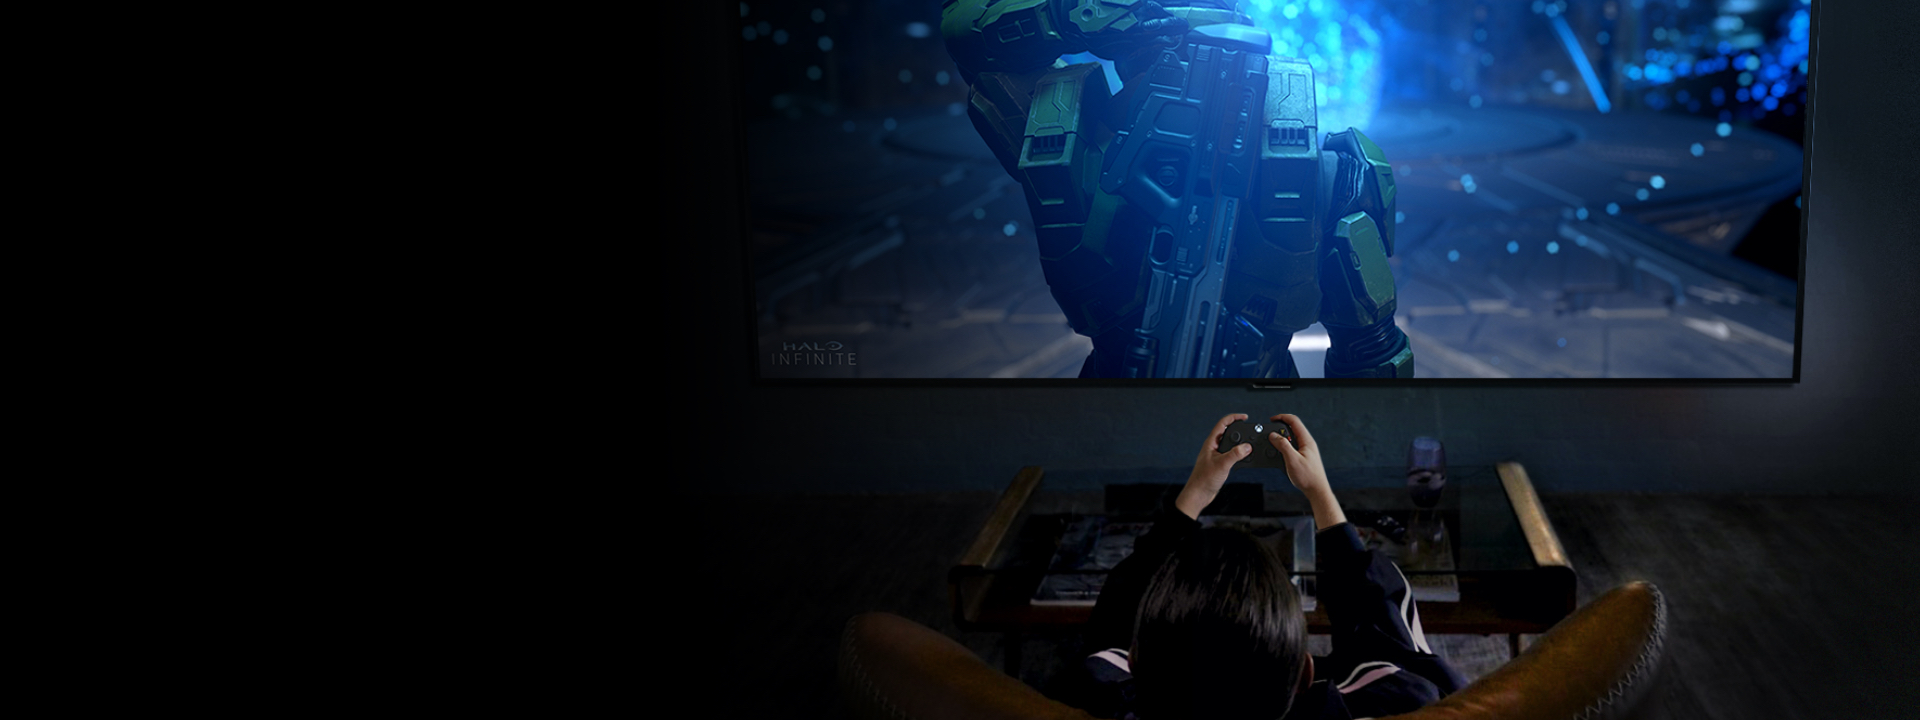 A gamer on a couch playing Halo on an LG OLED TV.